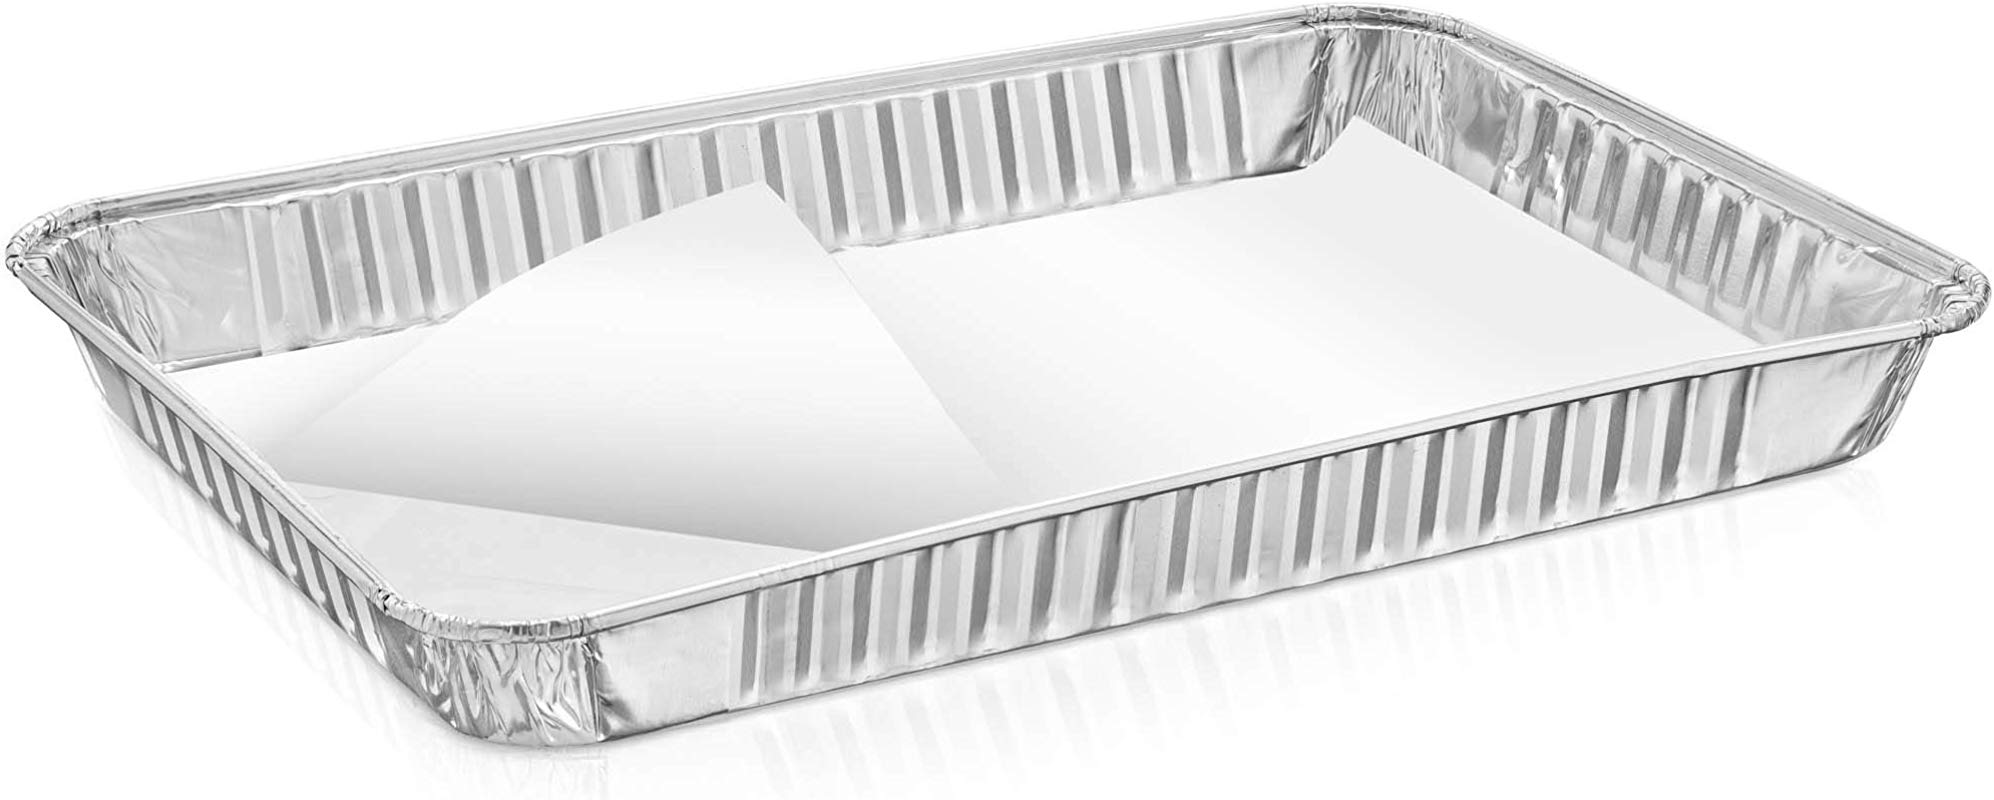 Set Of 10 1 4 Size Quarter Sheet Cake Aluminum Foil Pan Parchment Lined Extra Sturdy And Durable Great For Bake Sales Events And Transporting Food 12 3 4 X8 3 4 X 1 1 4